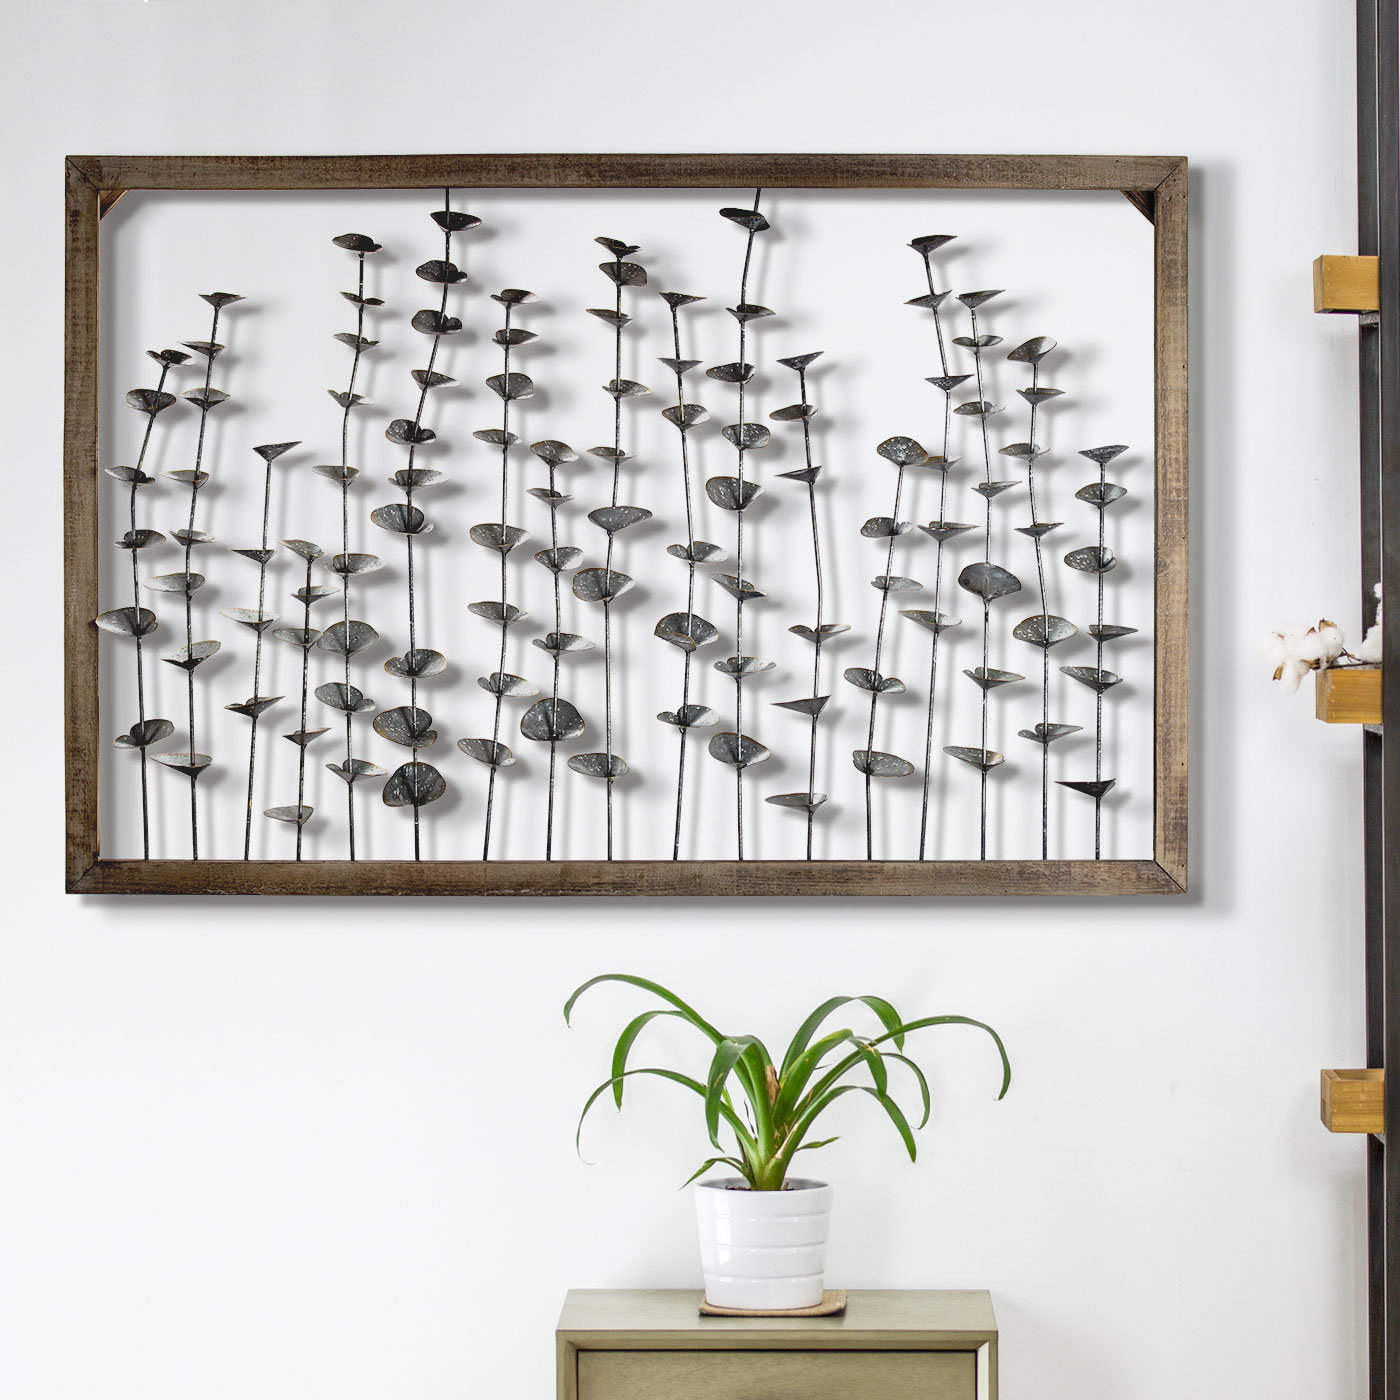 Framed Metal Flower Leaves Sculpture Wall Art Farmhouse Wall Décor With Regard To Olive/gray Metal Wall Decor (View 10 of 30)